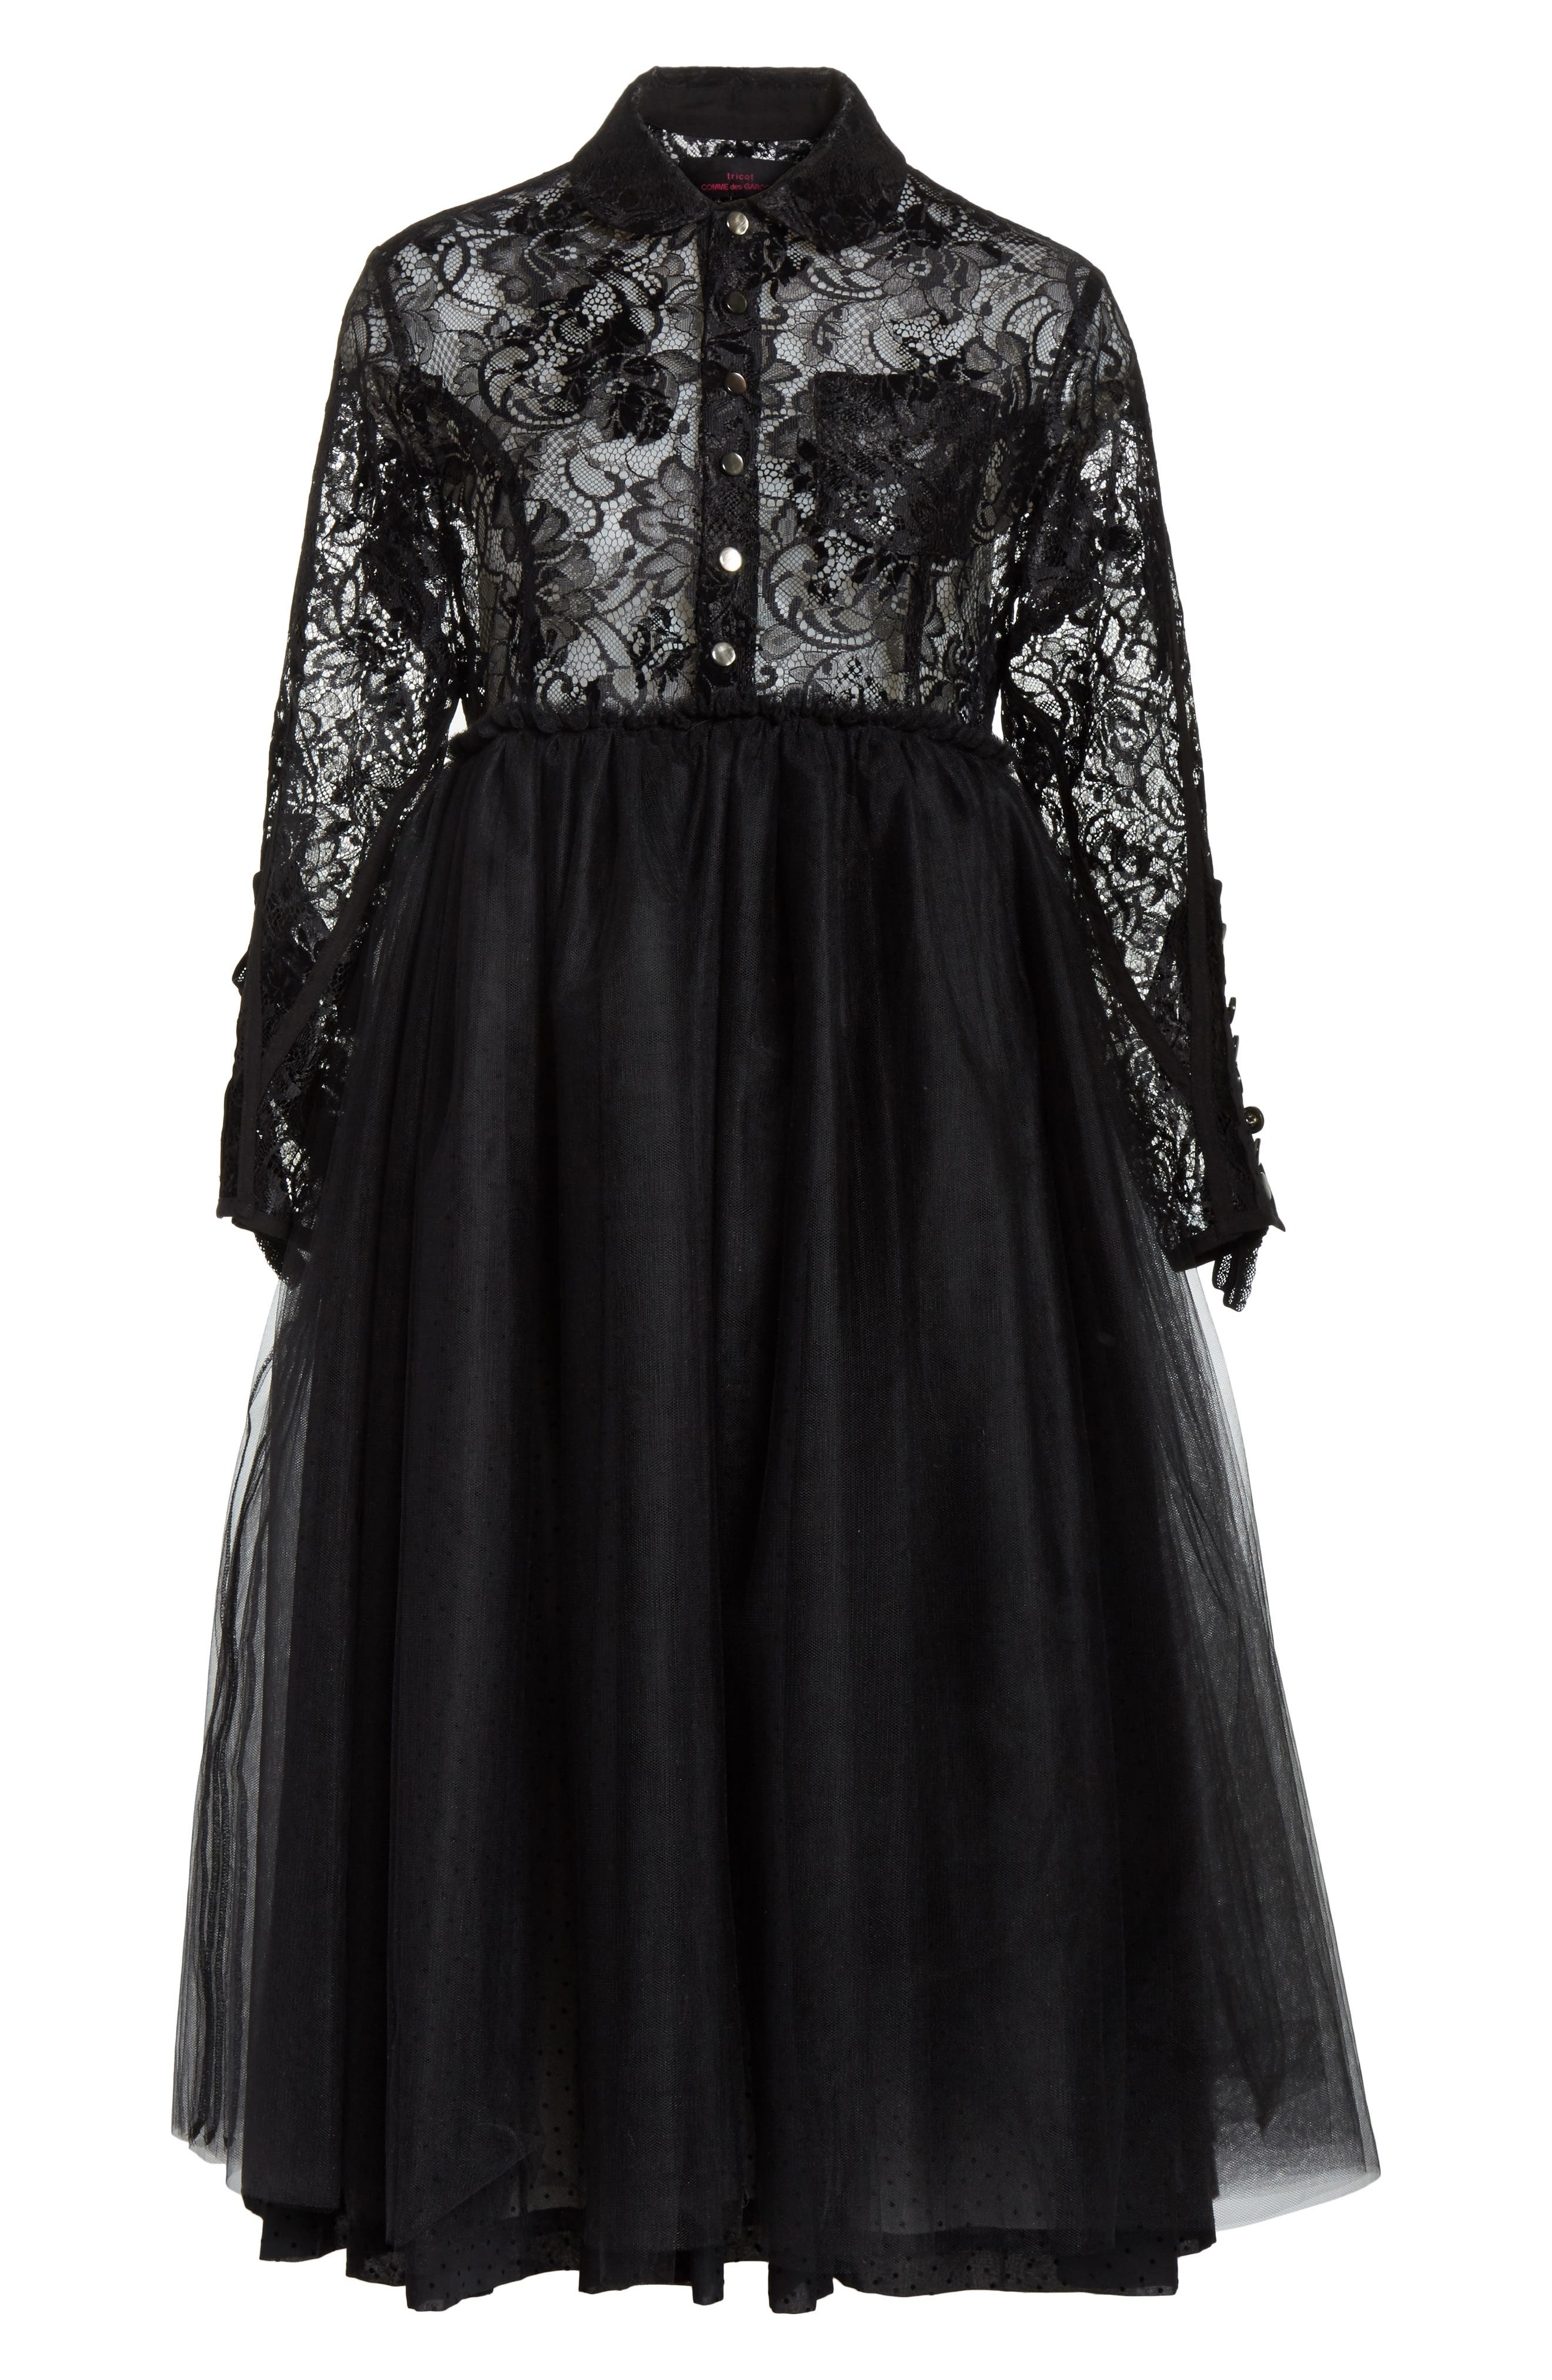 Lace Bodice Shirtdress with Tulle Skirt,                             Alternate thumbnail 7, color,                             Blk/Blk X Blk